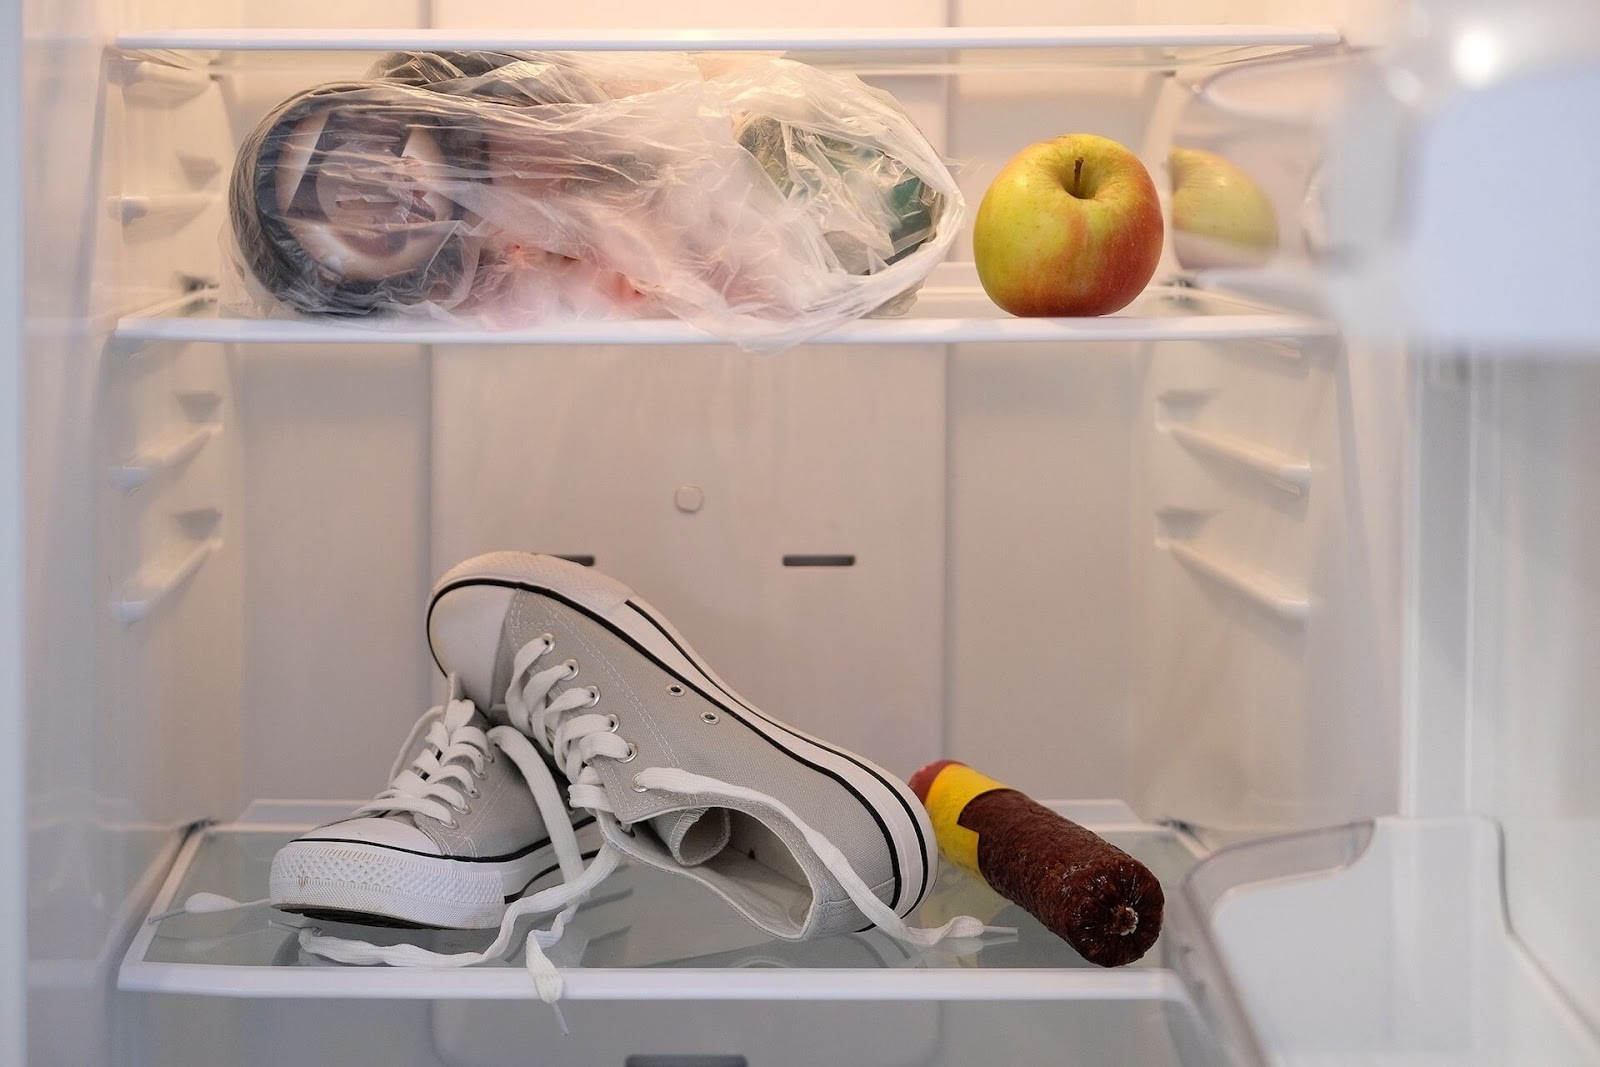 Some grey converse sneakers in the freezer